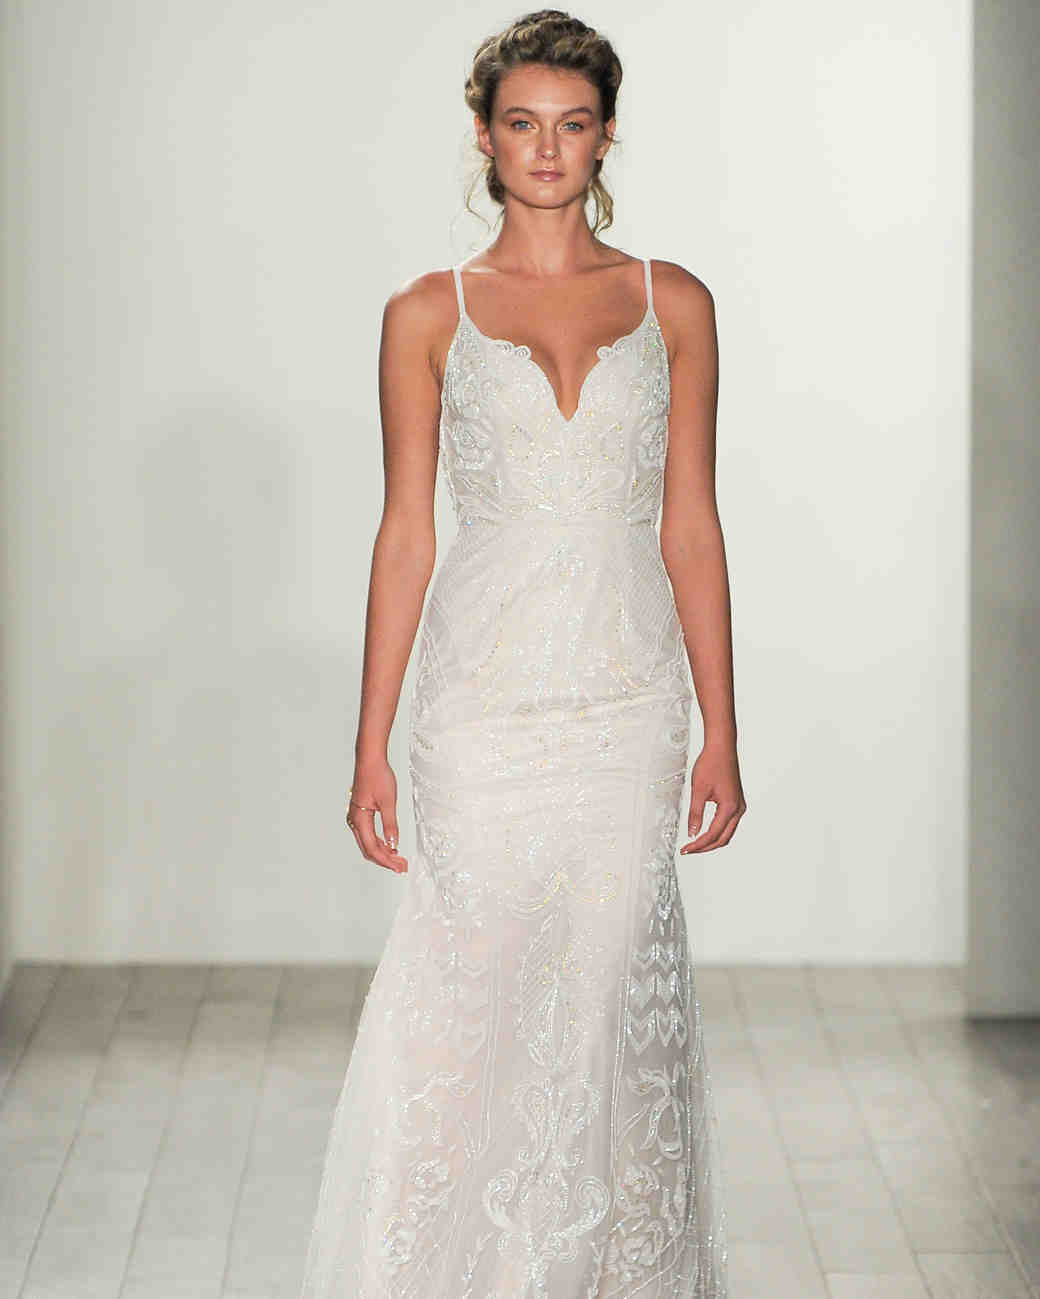 hayley paige wedding dresses fall hayley paige wedding dress Hayley Paige Fall Wedding Dress Collection